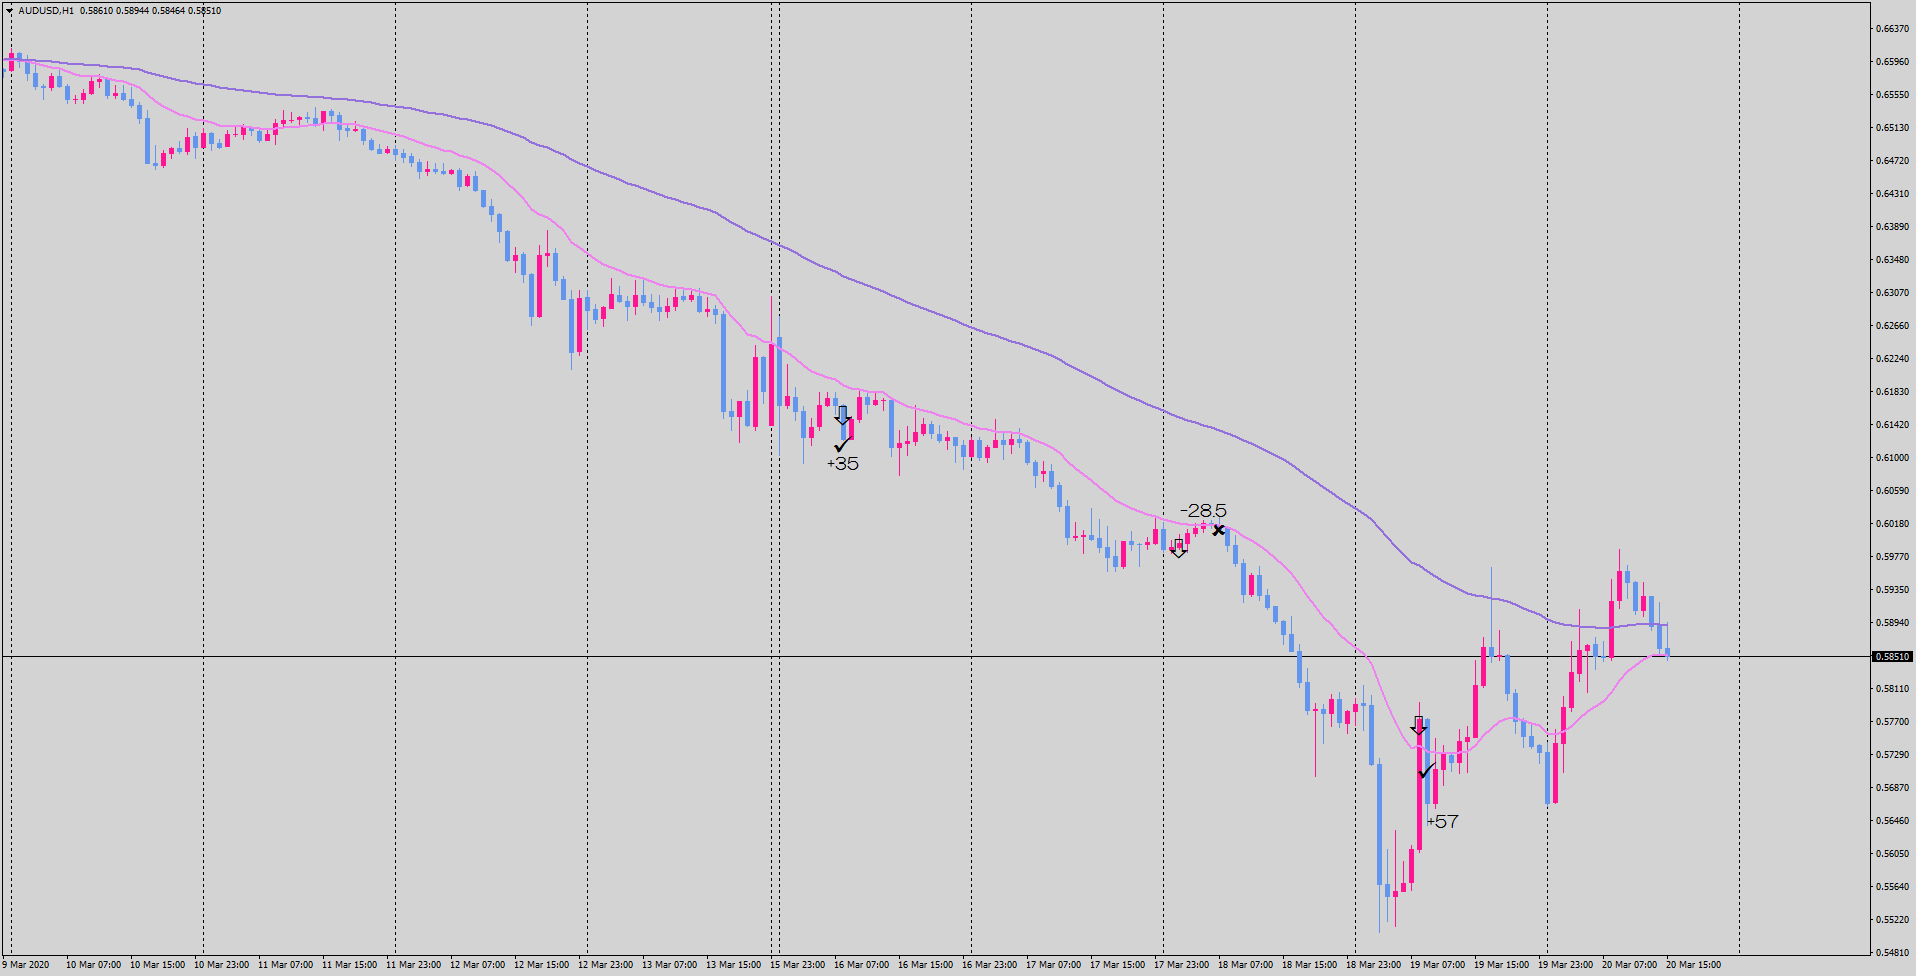 20-03-20-audusd-h1-tradexfin-limited.png